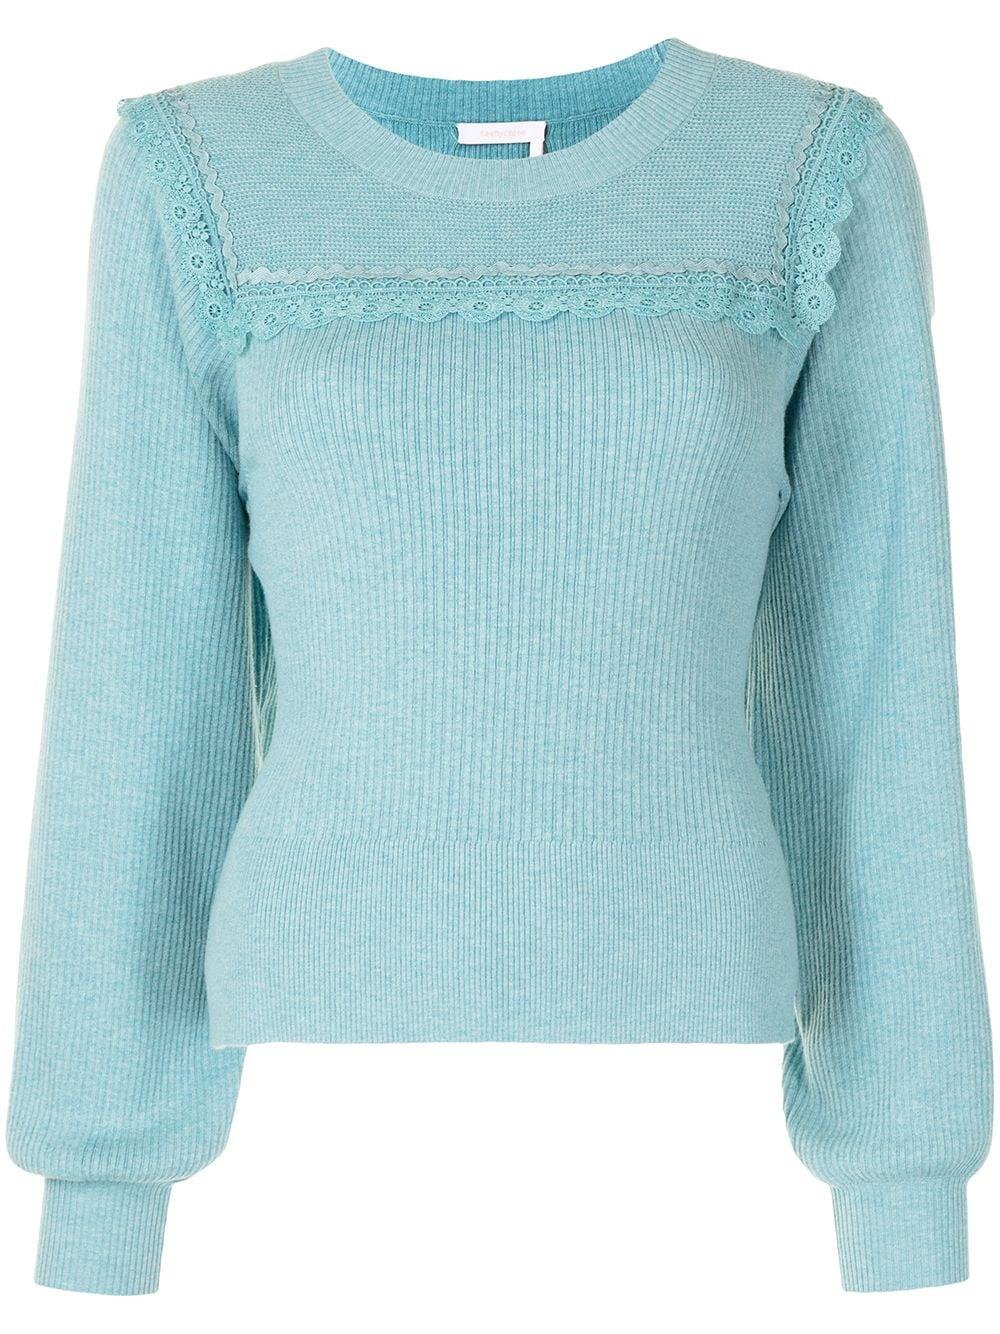 Lace Trimmed Sweater Item # CHS21SMP11580